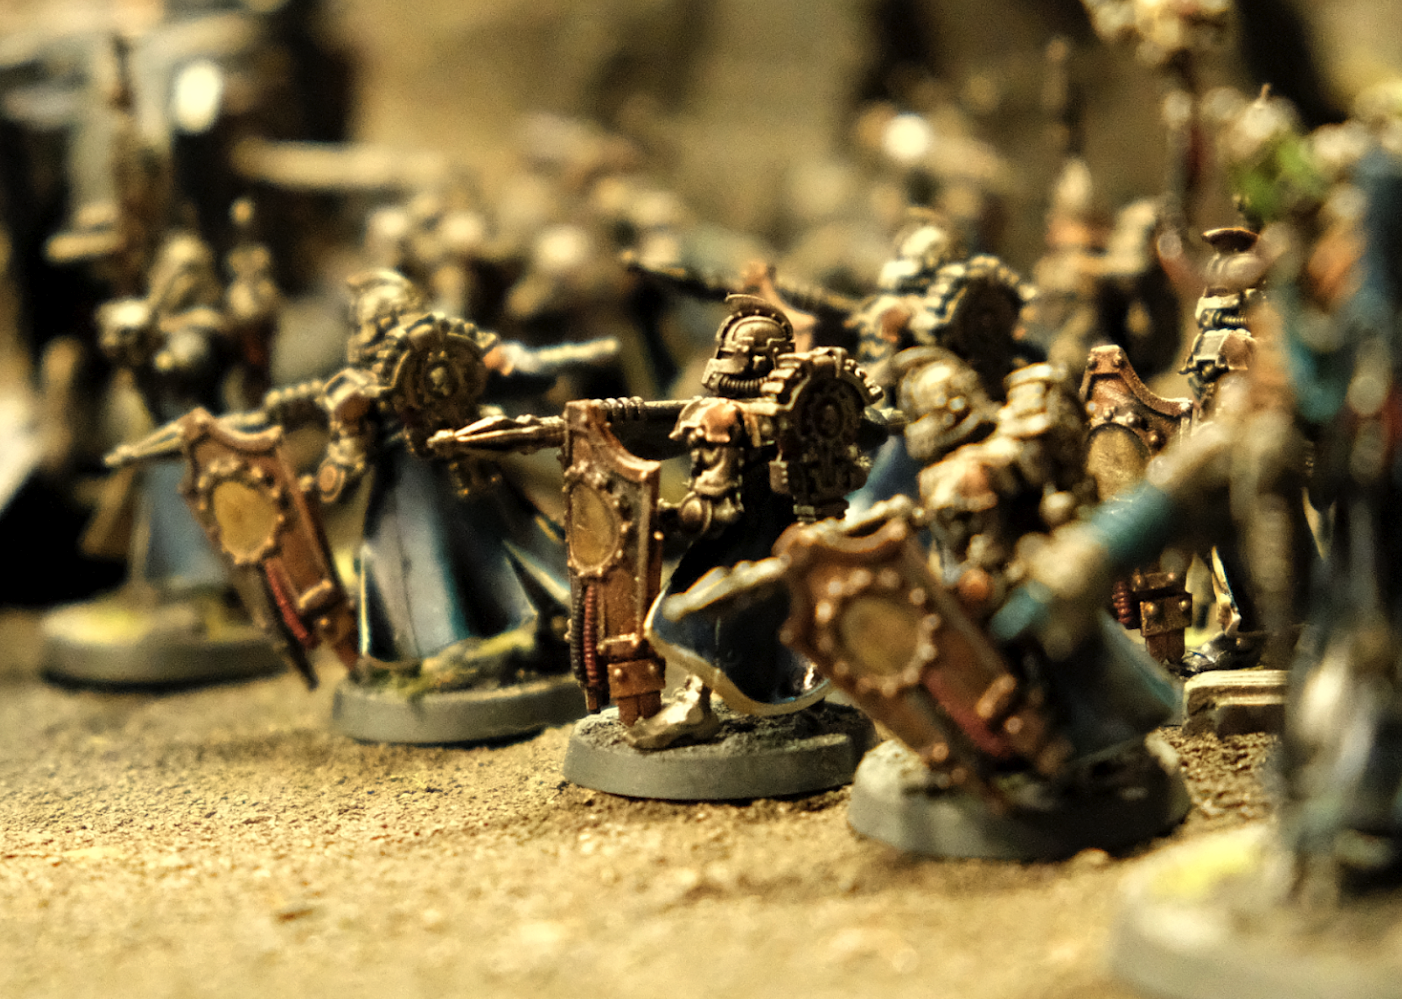 Skitarii miniatures armed with spears an shield laid out for a game of Warhammer 40k